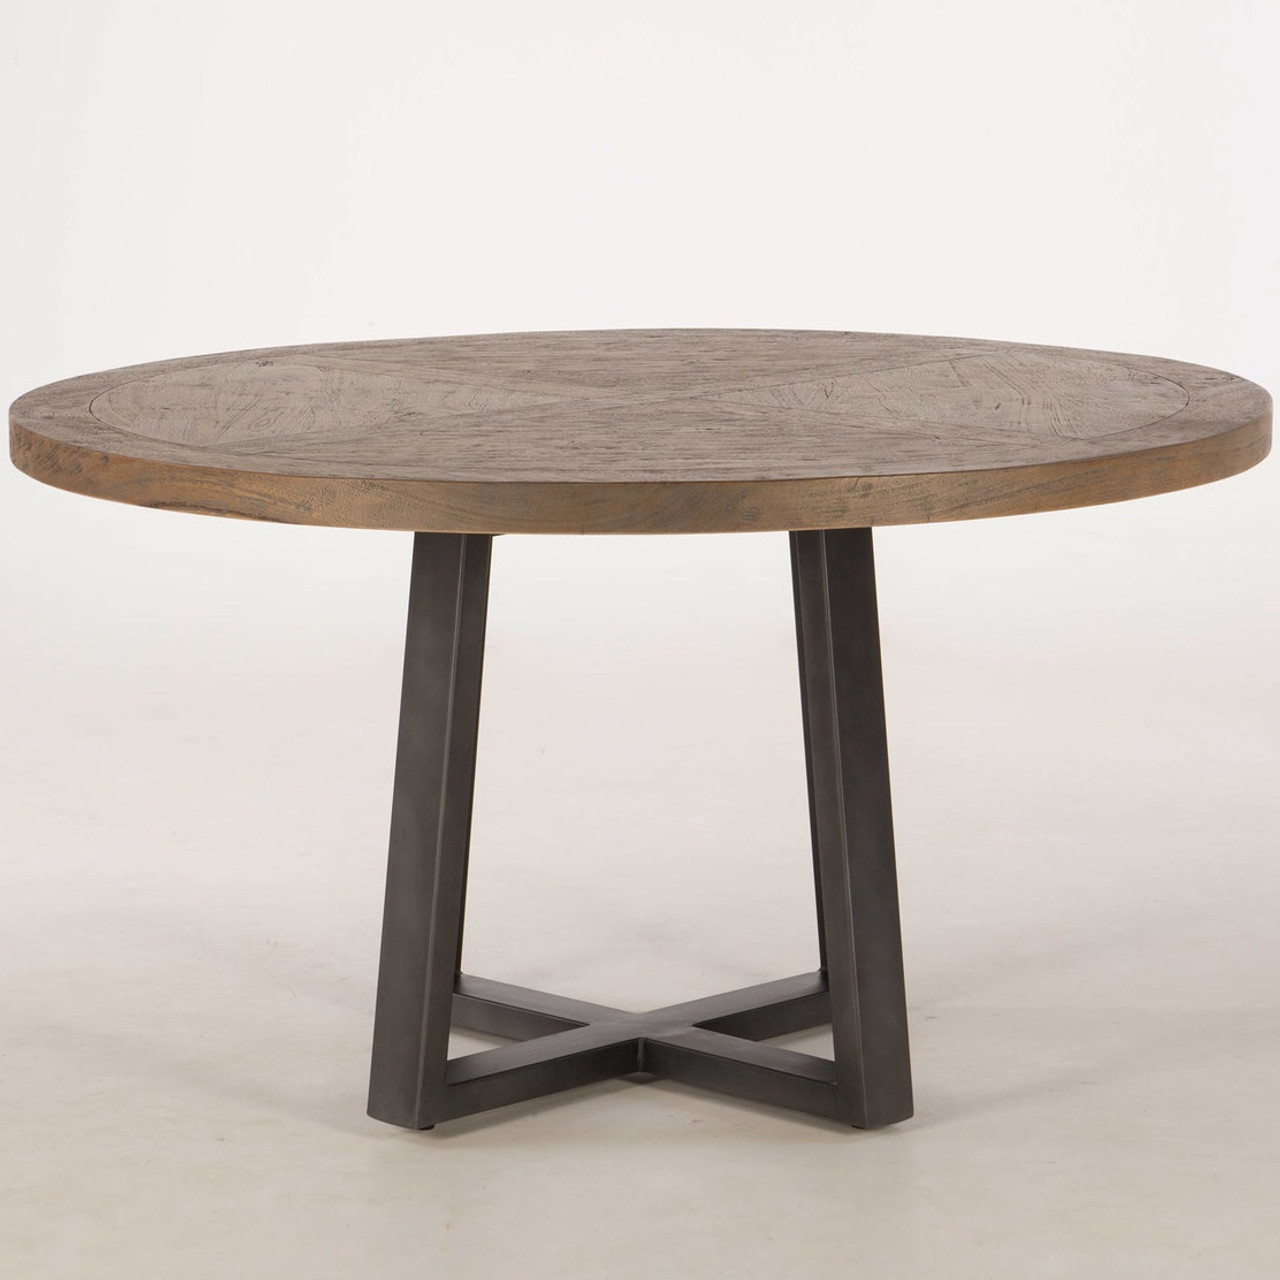 long beach wood and iron round dining table 54 zin home. Black Bedroom Furniture Sets. Home Design Ideas